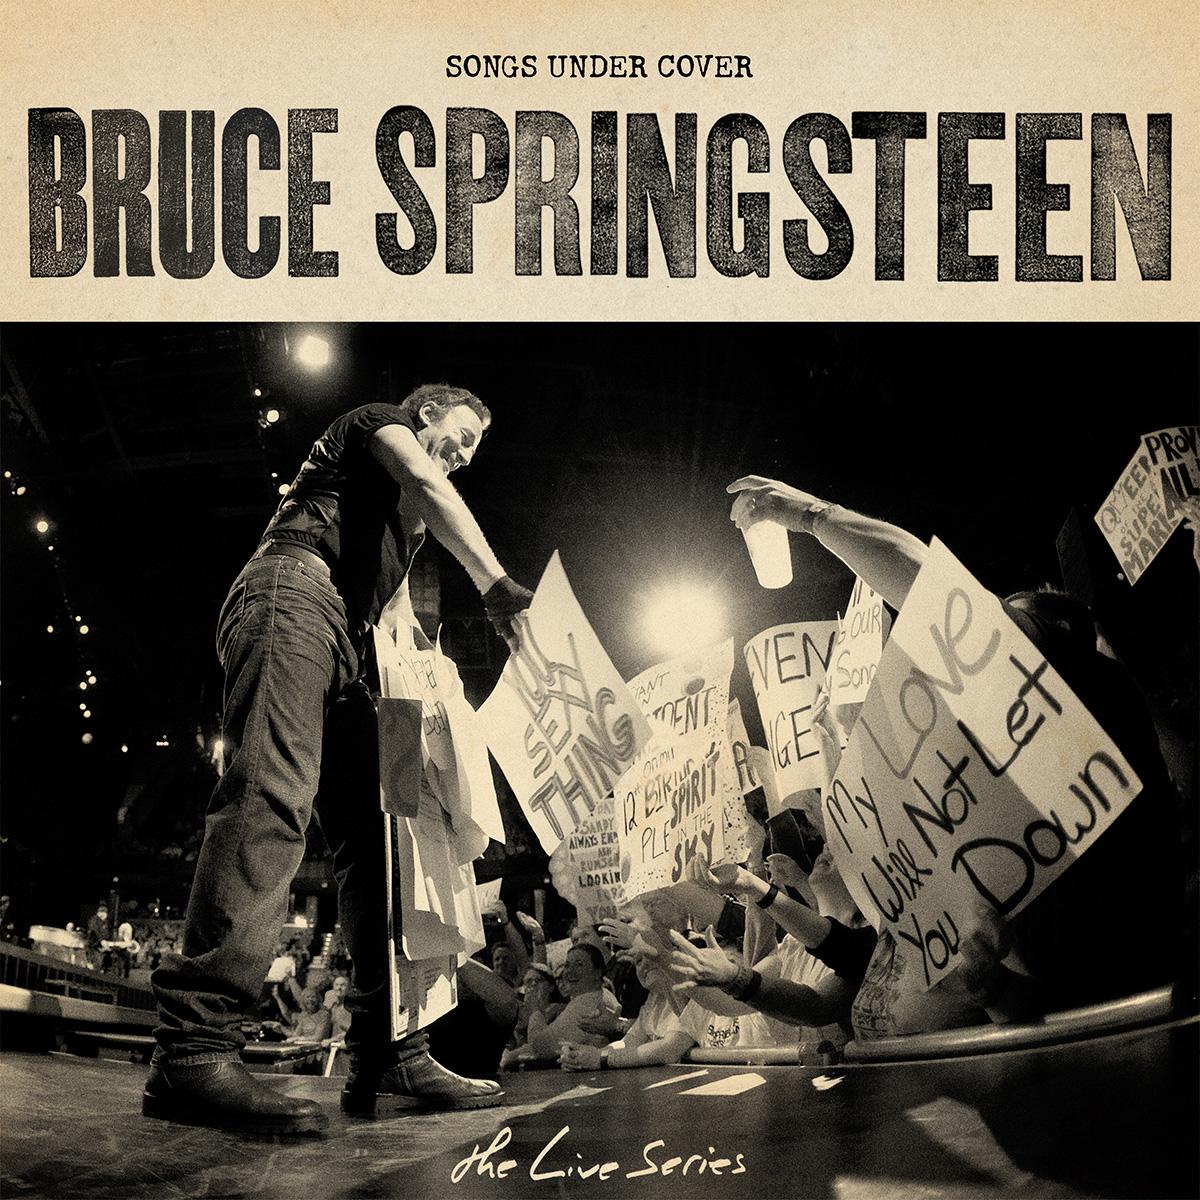 BRUCE SPRINGSTEEN – THE LIVE SERIES CONTINUES